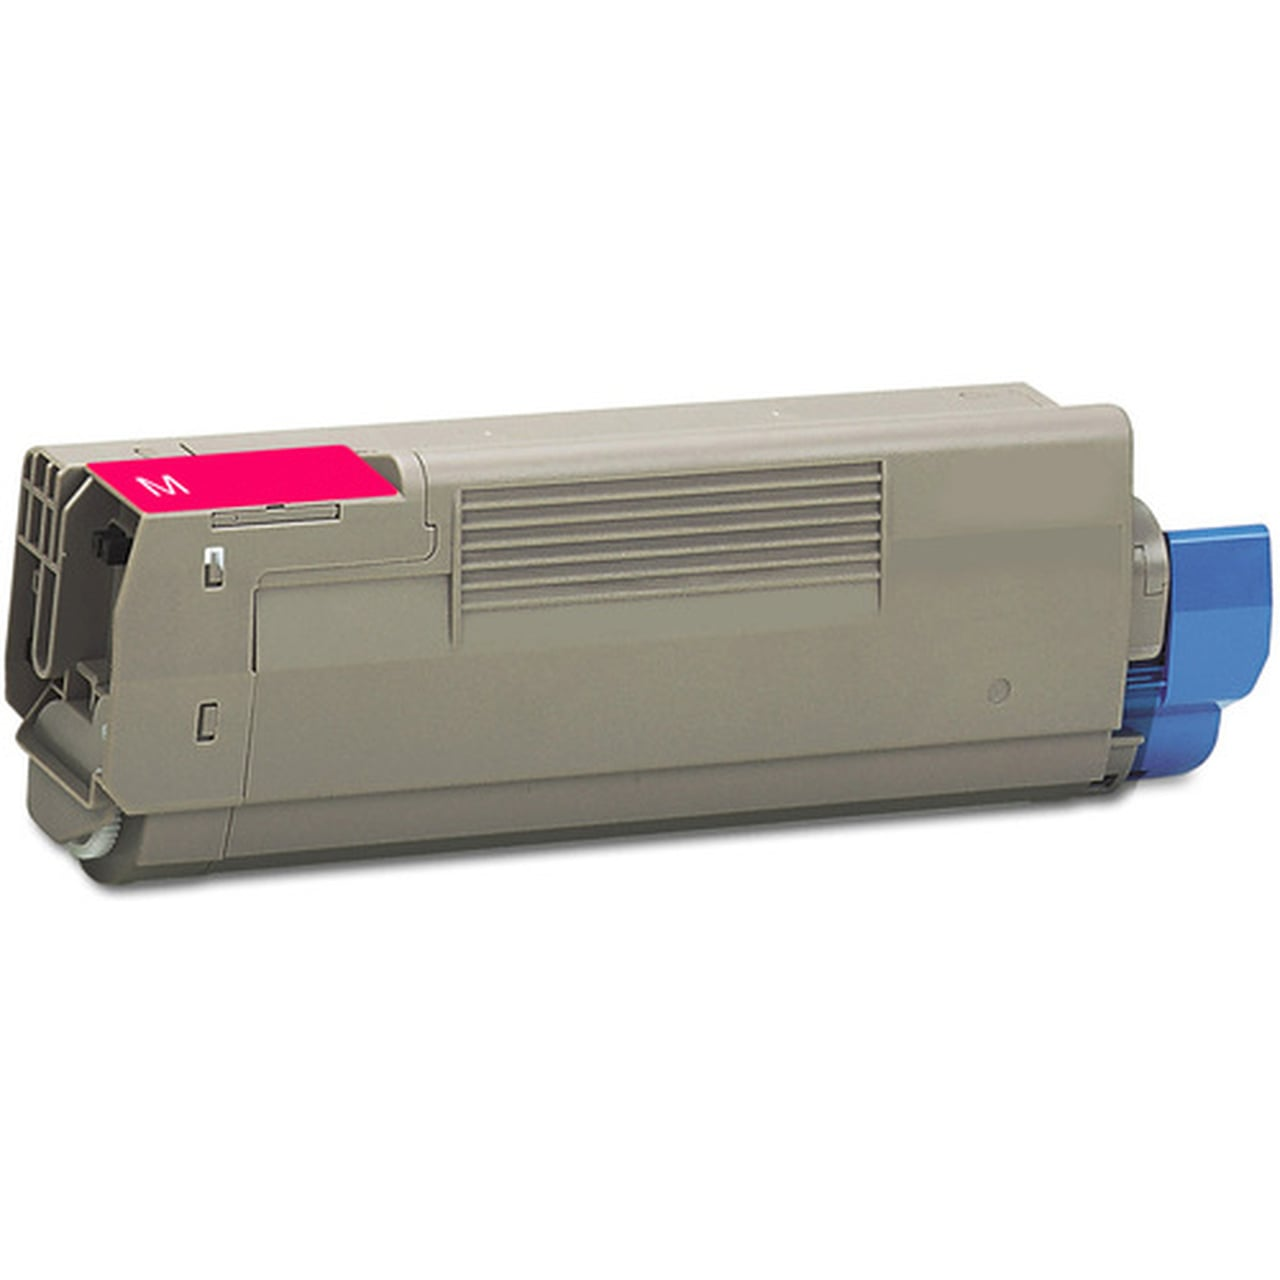 43866102 Toner Cartridge - Okidata New Compatible  (Magenta)